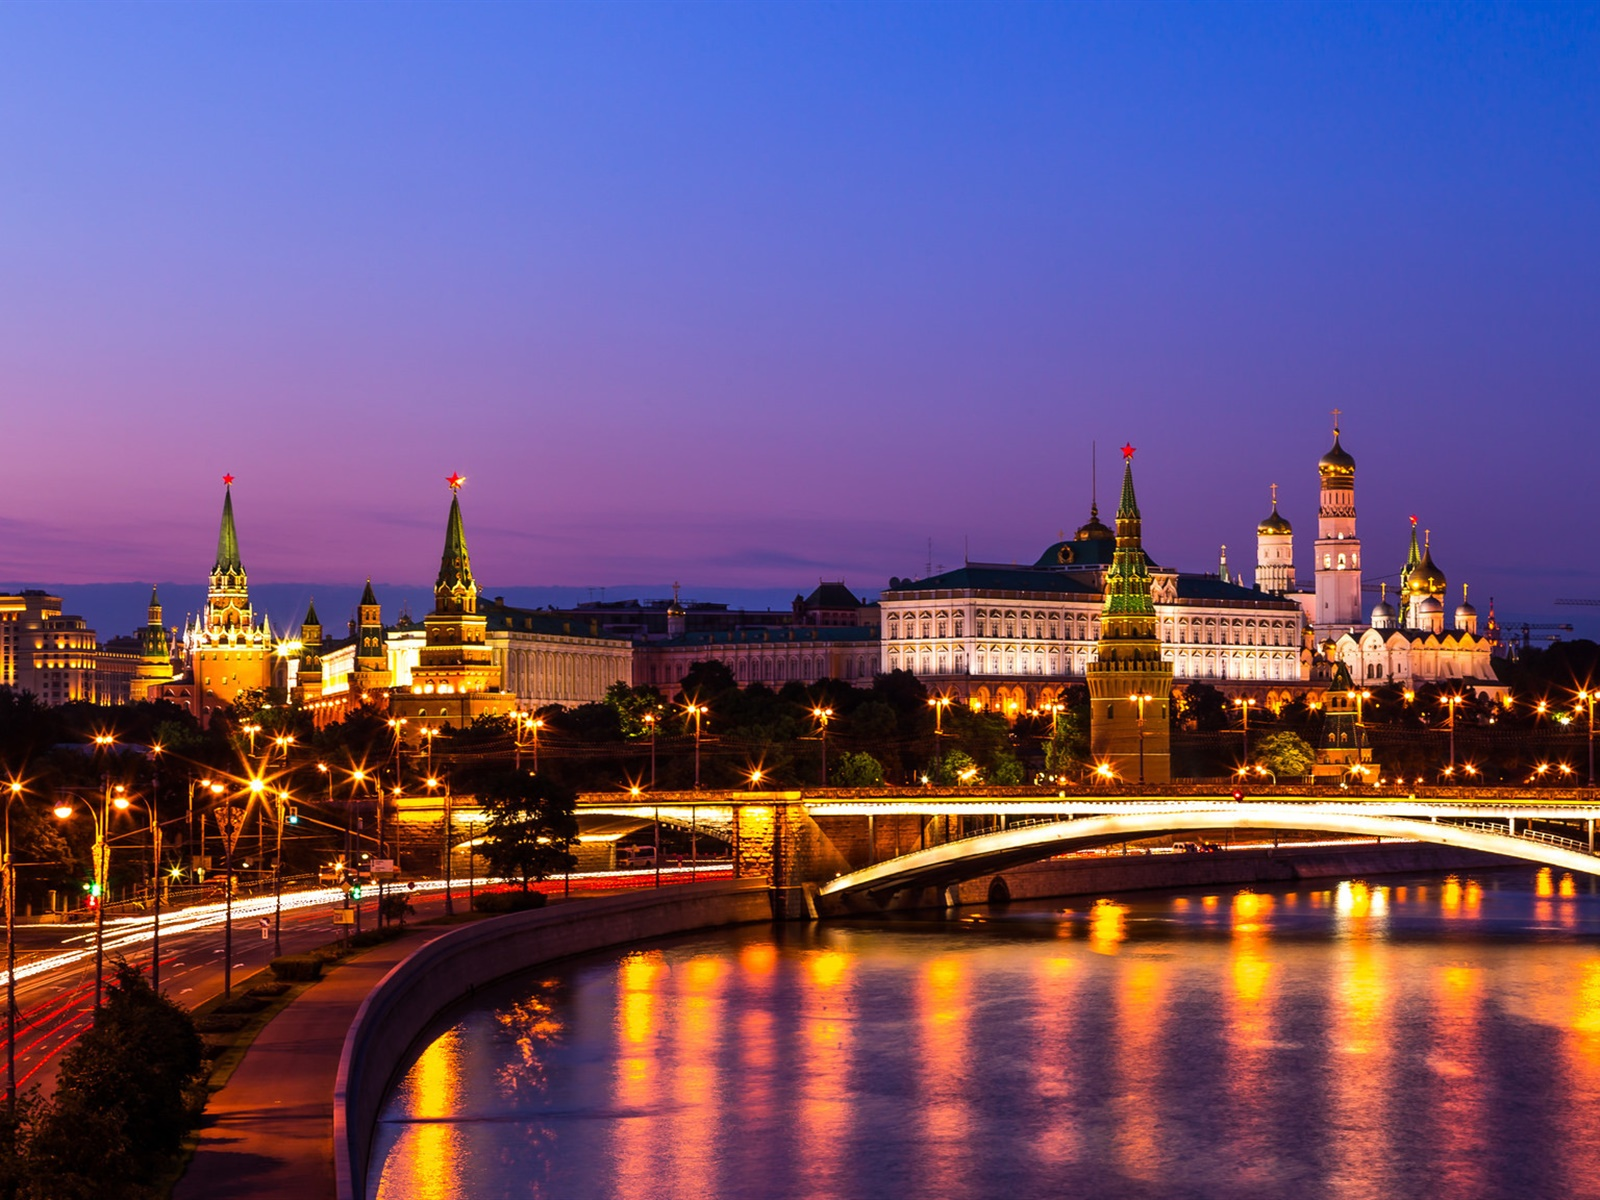 The Kremlin, Russia, Moscow, night city, river, lights 1600x1200 wallpaper